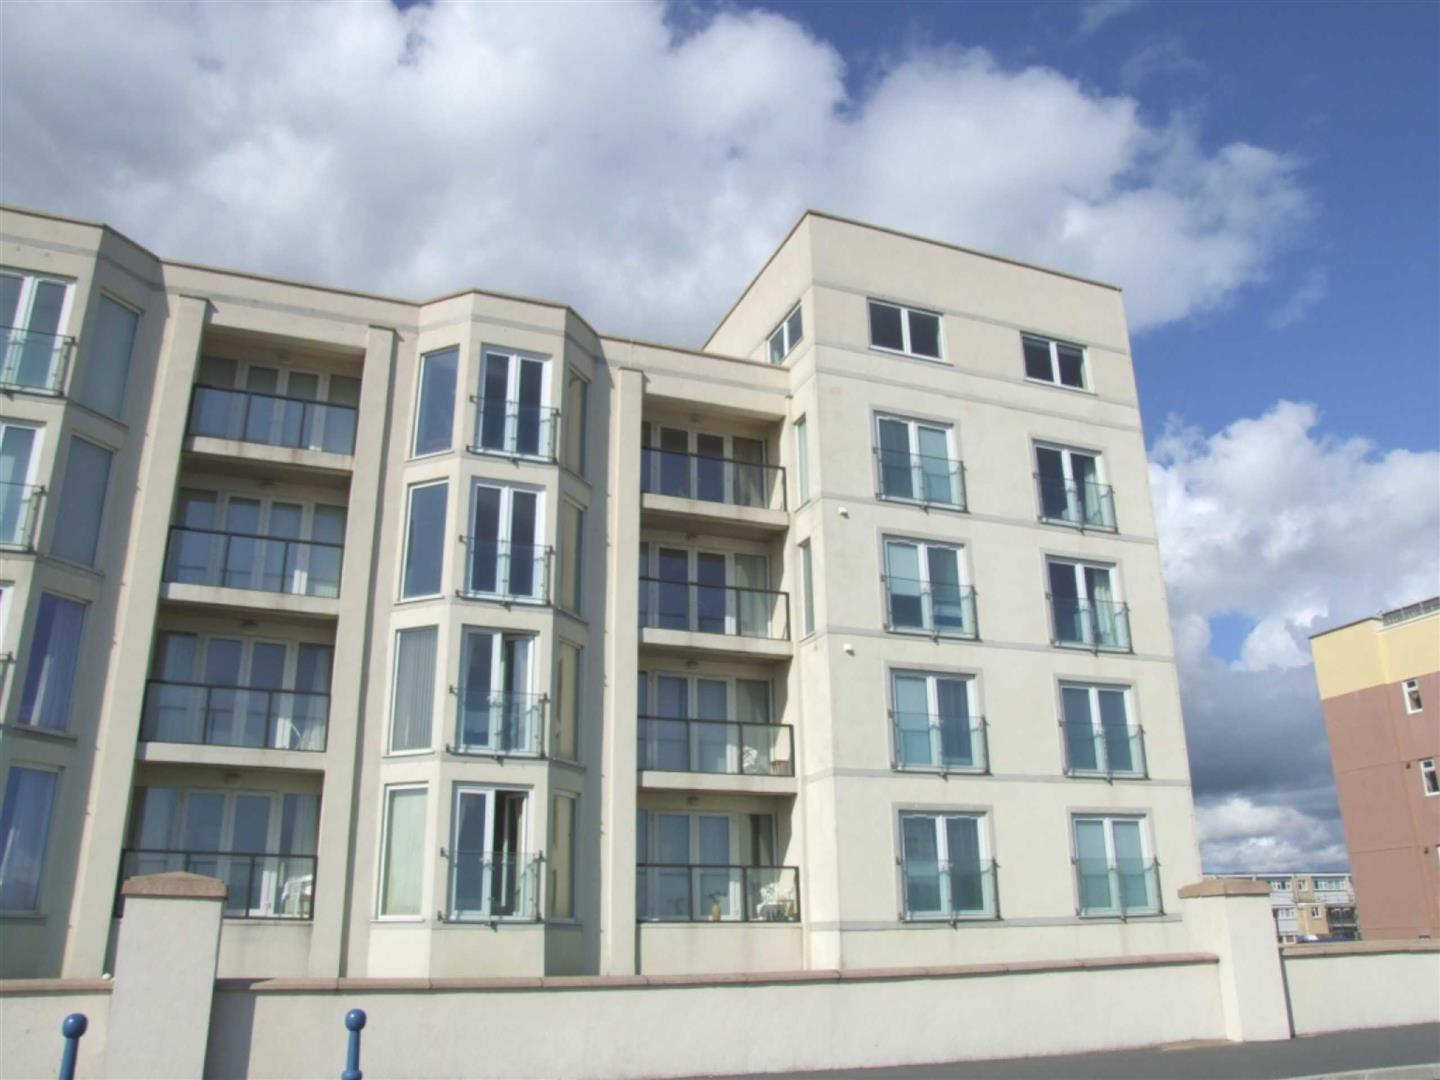 West End Point, Pwllheli - £185,000/Offers over